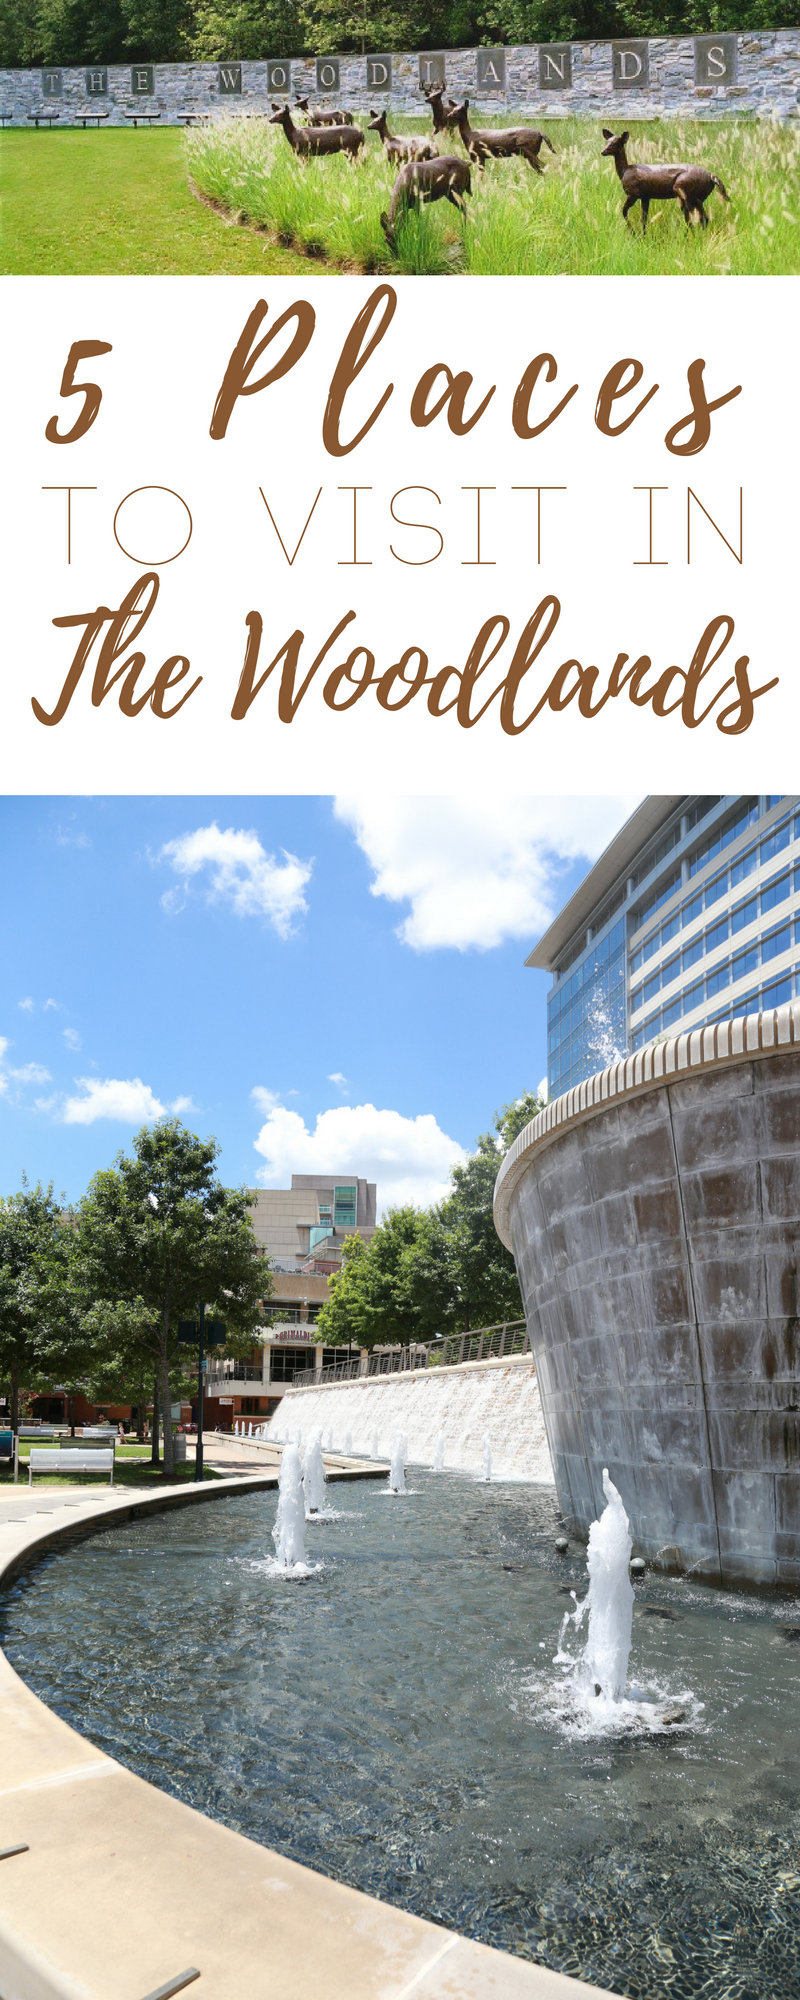 5 Places To Visit In The Woodlands Day Trips From Houston Visit Houston Places To Visit